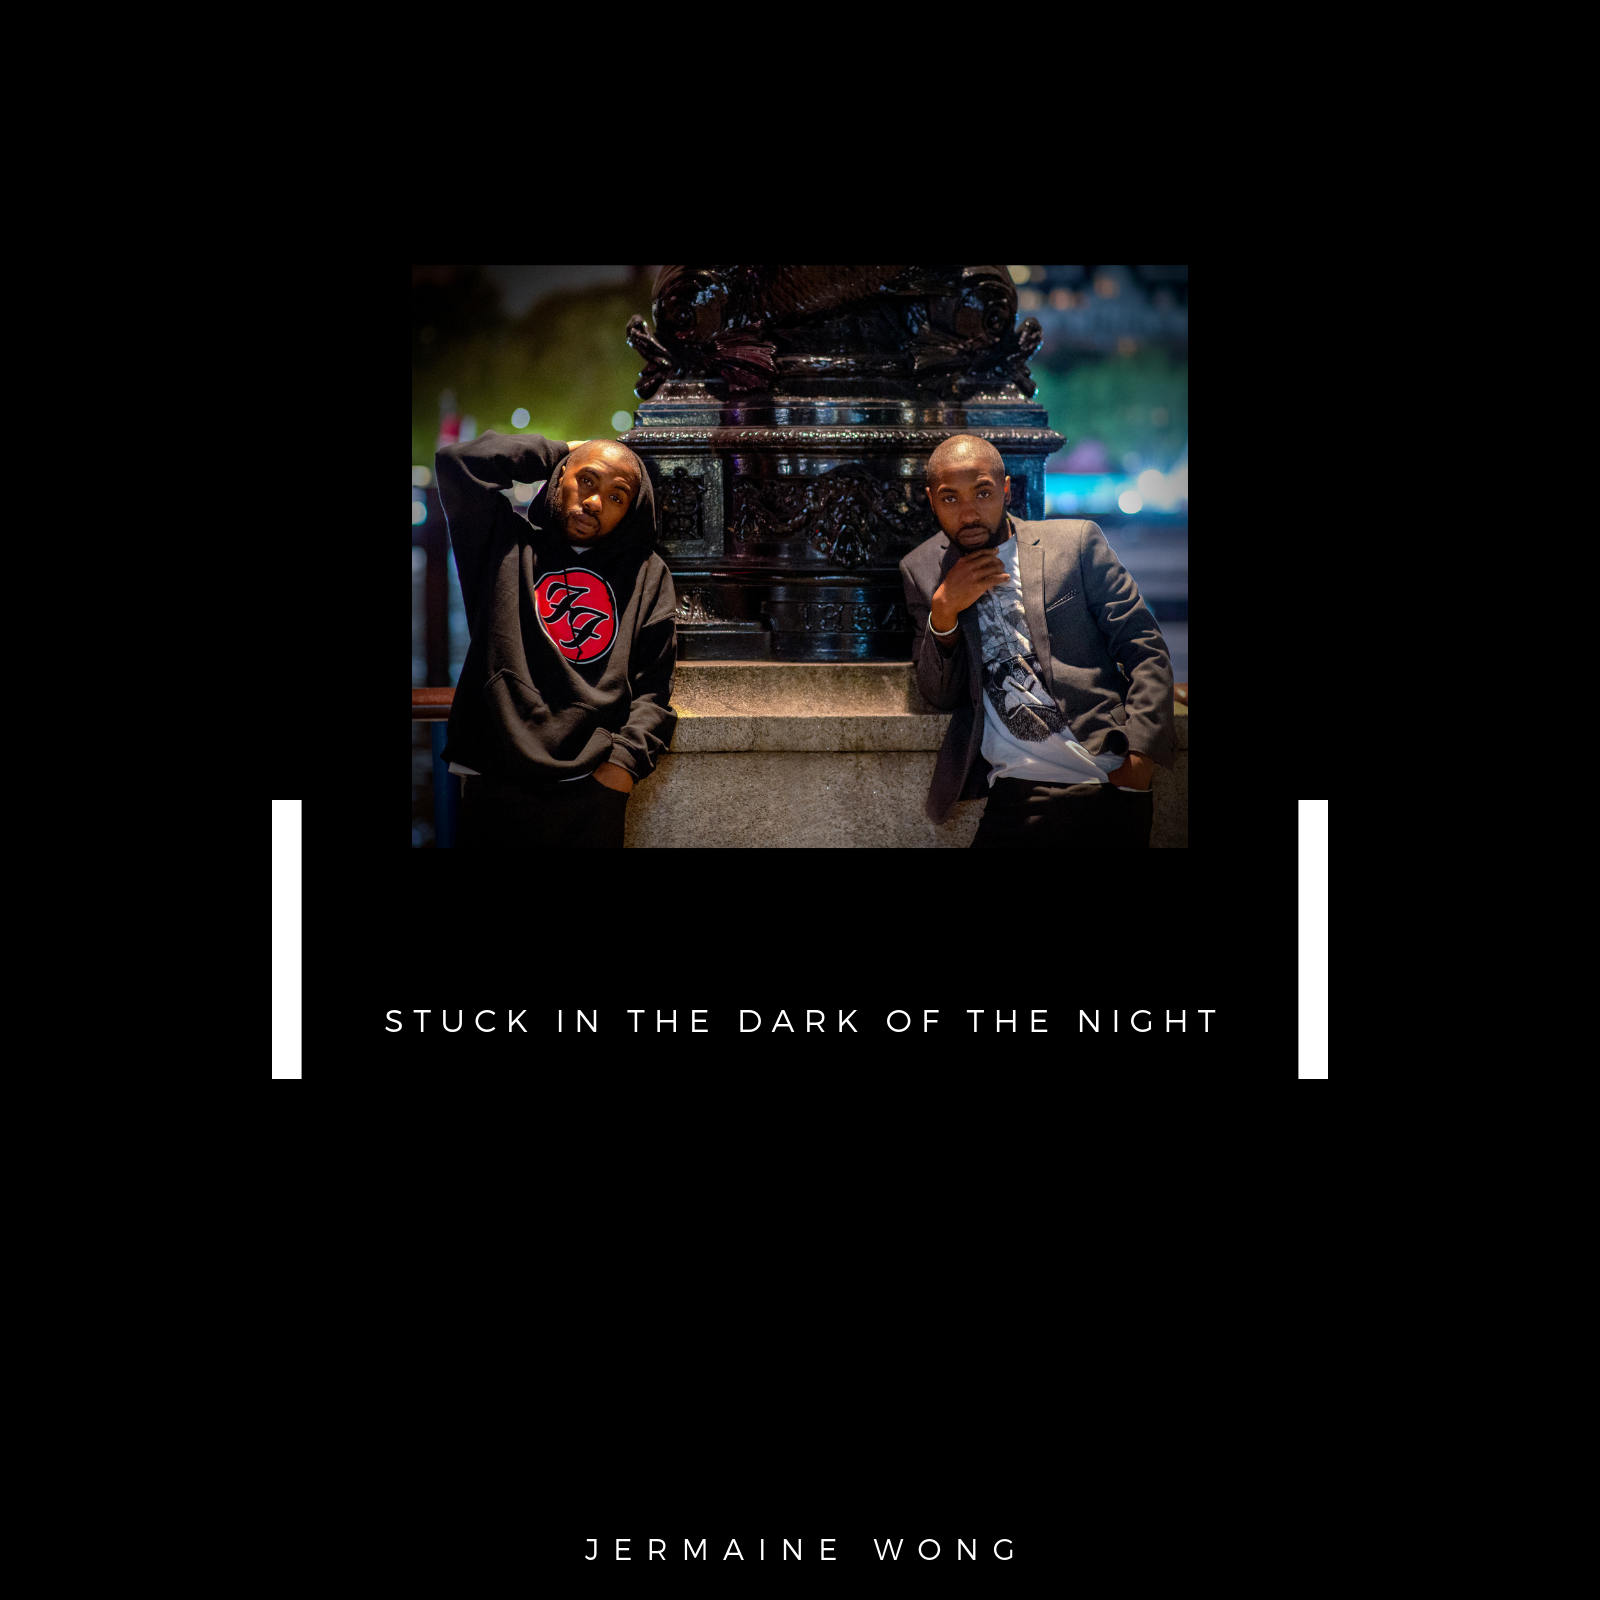 Stuck in the Dark of the Night SINGLEOUT NOW - 'Stuck in the Dark of the Night' is the title track inspired by Jermaine's personal life testimony.The single 'Stuck in the Dark of the Night' will be released on the 31st May ahead of the EP release in July as part of a staggered release.'Stuck in the Dark of the Night' was written to empower the soul and it makes no apologies in making Christ real for the human experience.LISTEN HERE